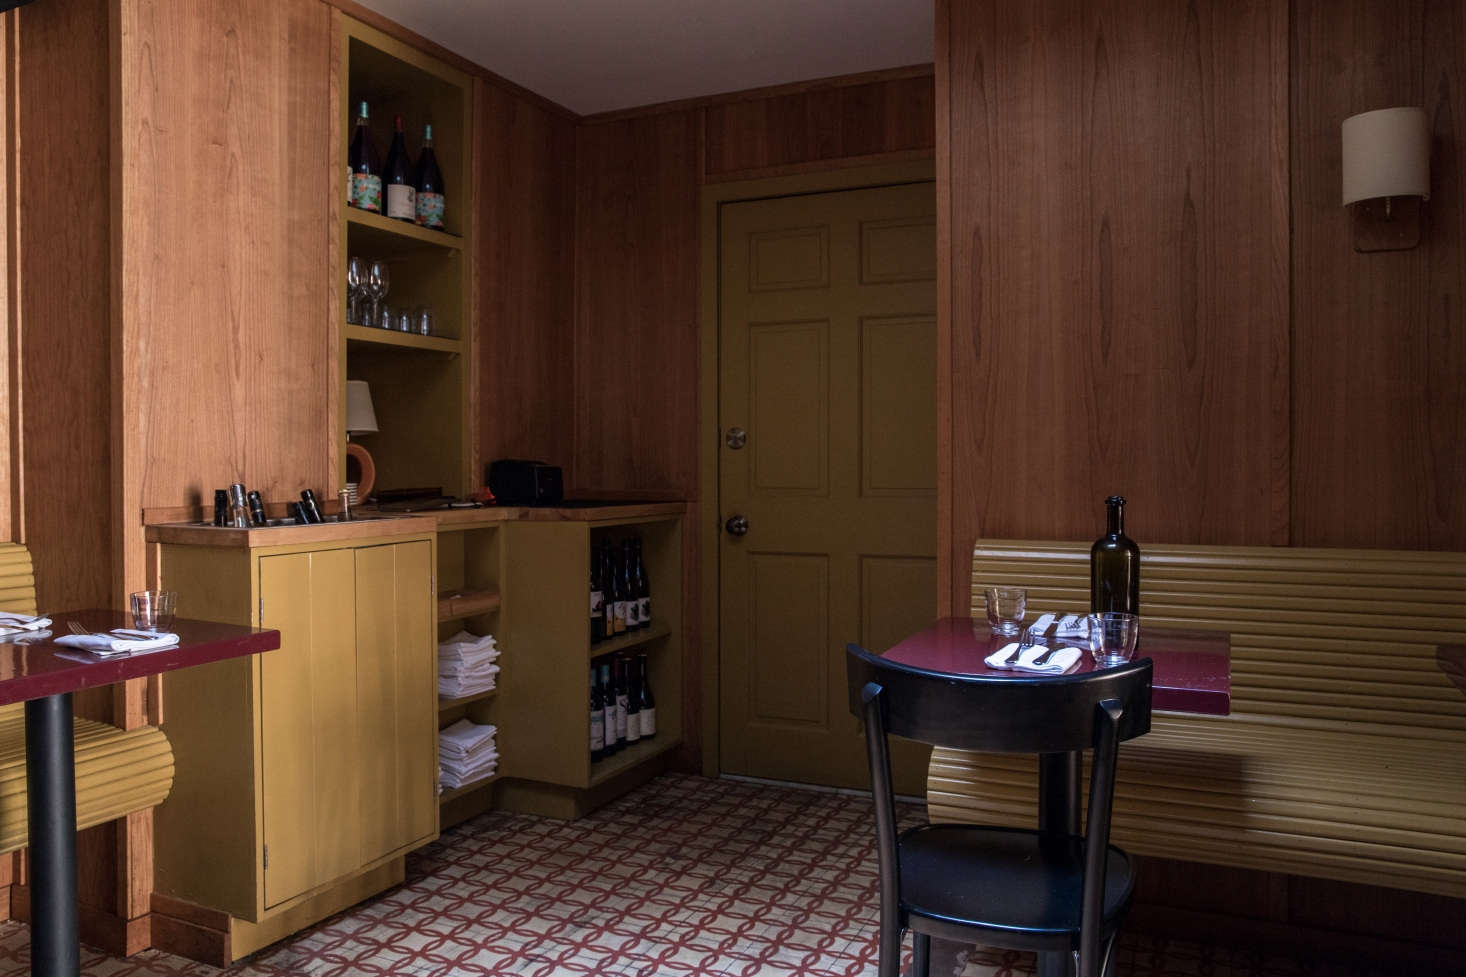 In the small back room, a wall of built-ins is both artful and efficient. The benches, cabinets and shelves, and door (which leads to the small bathroom) are all painted inBenjamin Moore&#8